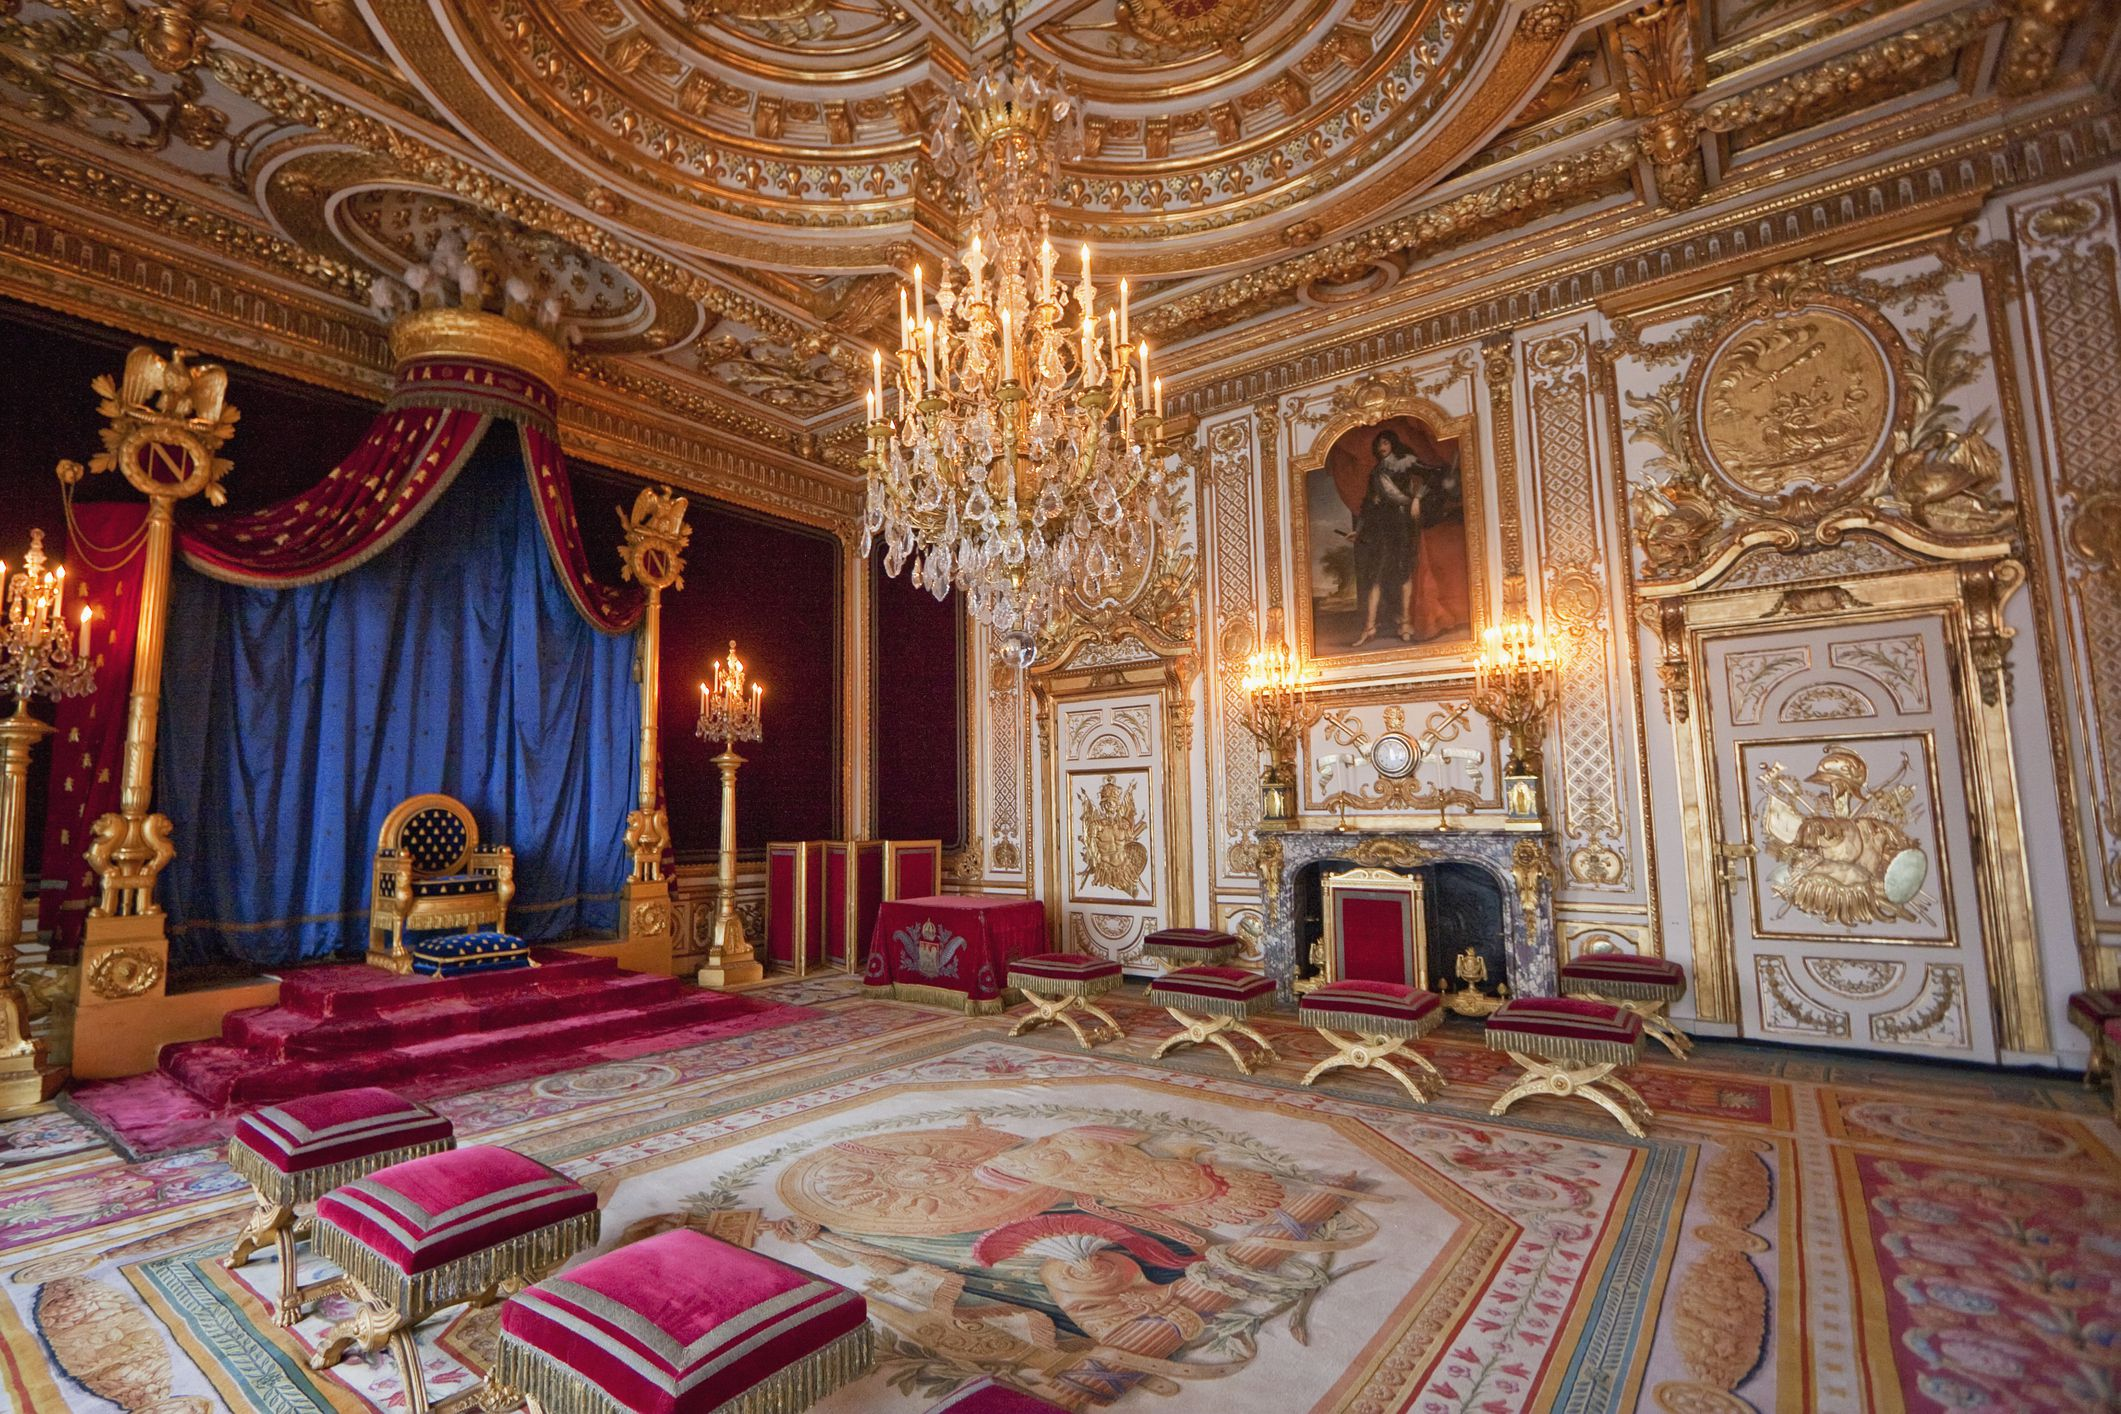 The Throne Room in the Palace of Fontainebleau, Fontainebleau, Seine-et-Marne, France